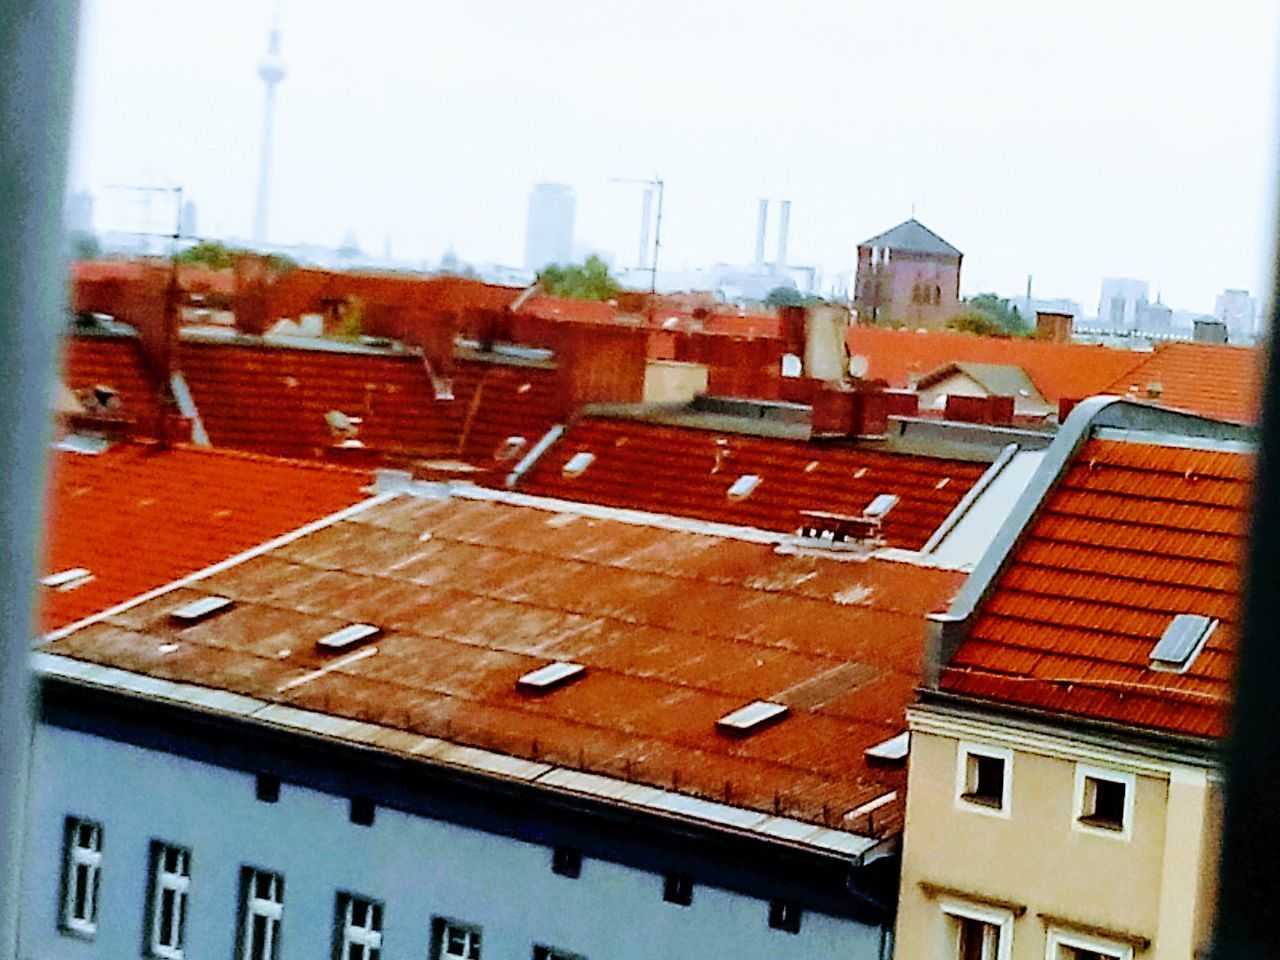 Capture Berlin view of Neukölln 's roofes City Roof Architecture Building Exterior Built Structure Day Outdoors No People Roofs Rooftops Rooftop Rooftopview TV Tower Tv Towers Berlin Neukölln Neukölln, Berlin, Love, View Neukoellnarcaden Neuköllner Arkaden Berlin Life Berlin Germany Europe